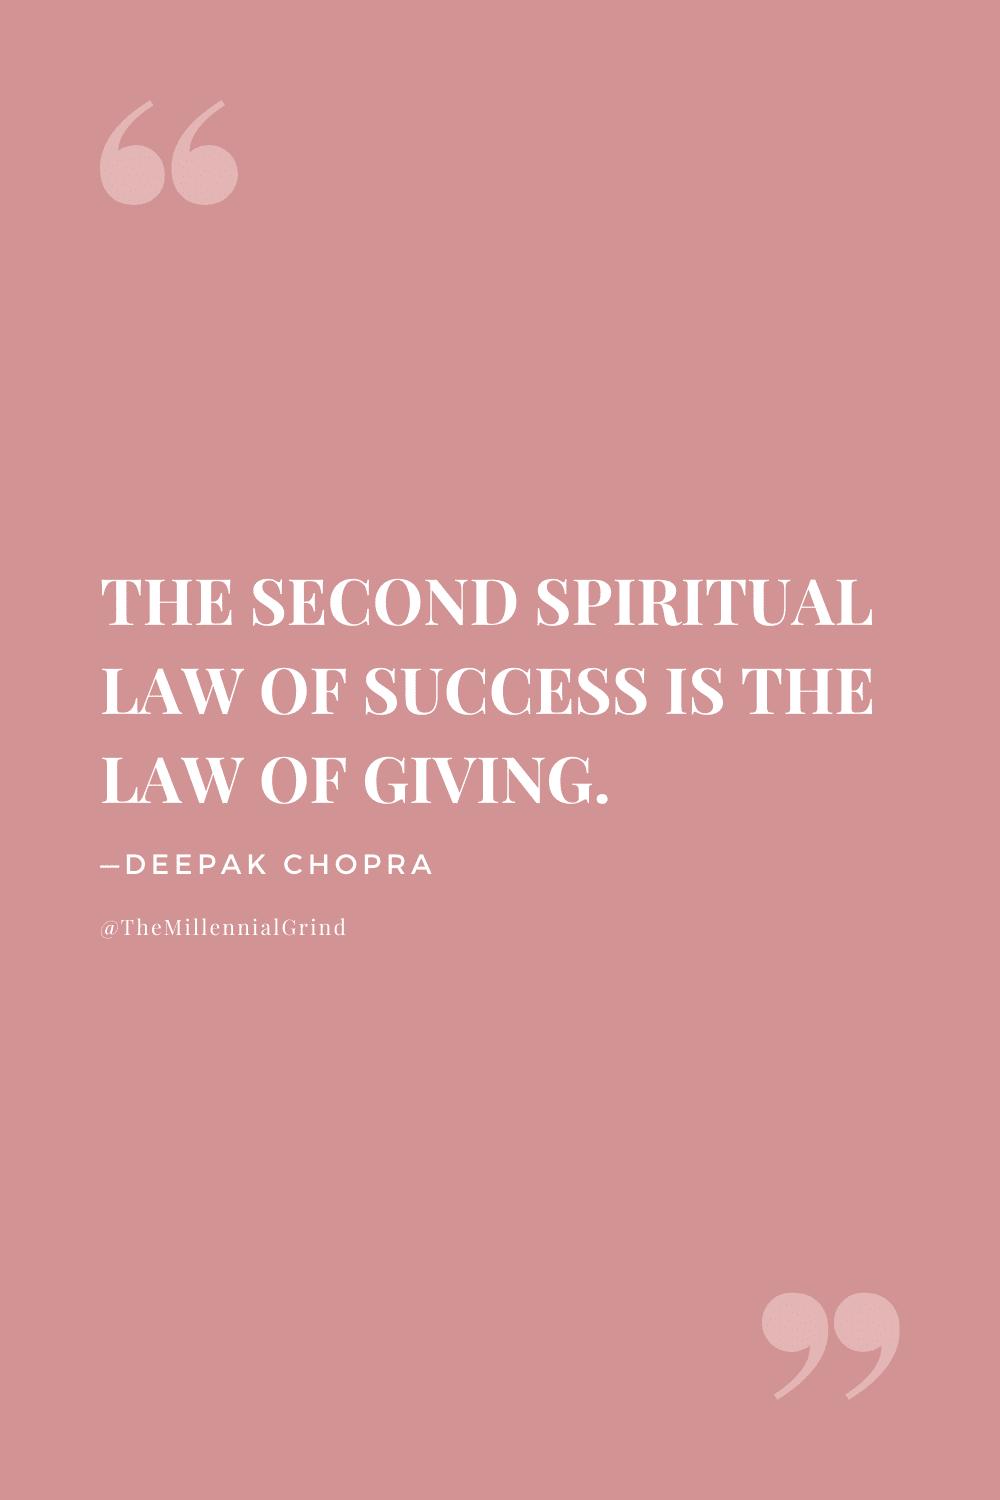 The Law of Giving Quote